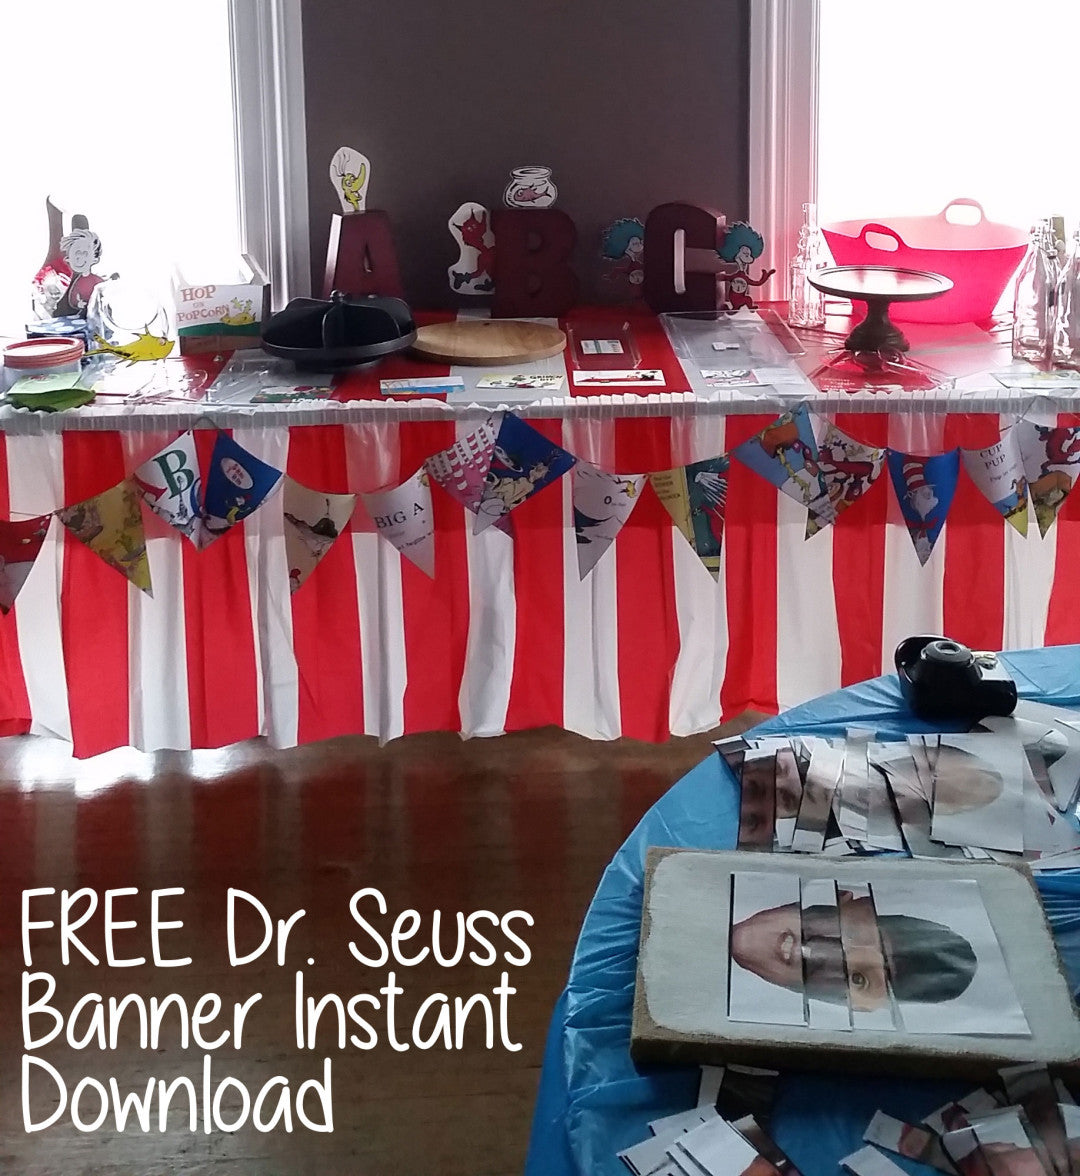 Dr Seuss Baby Shower Table Decorations  from cdn.shopify.com